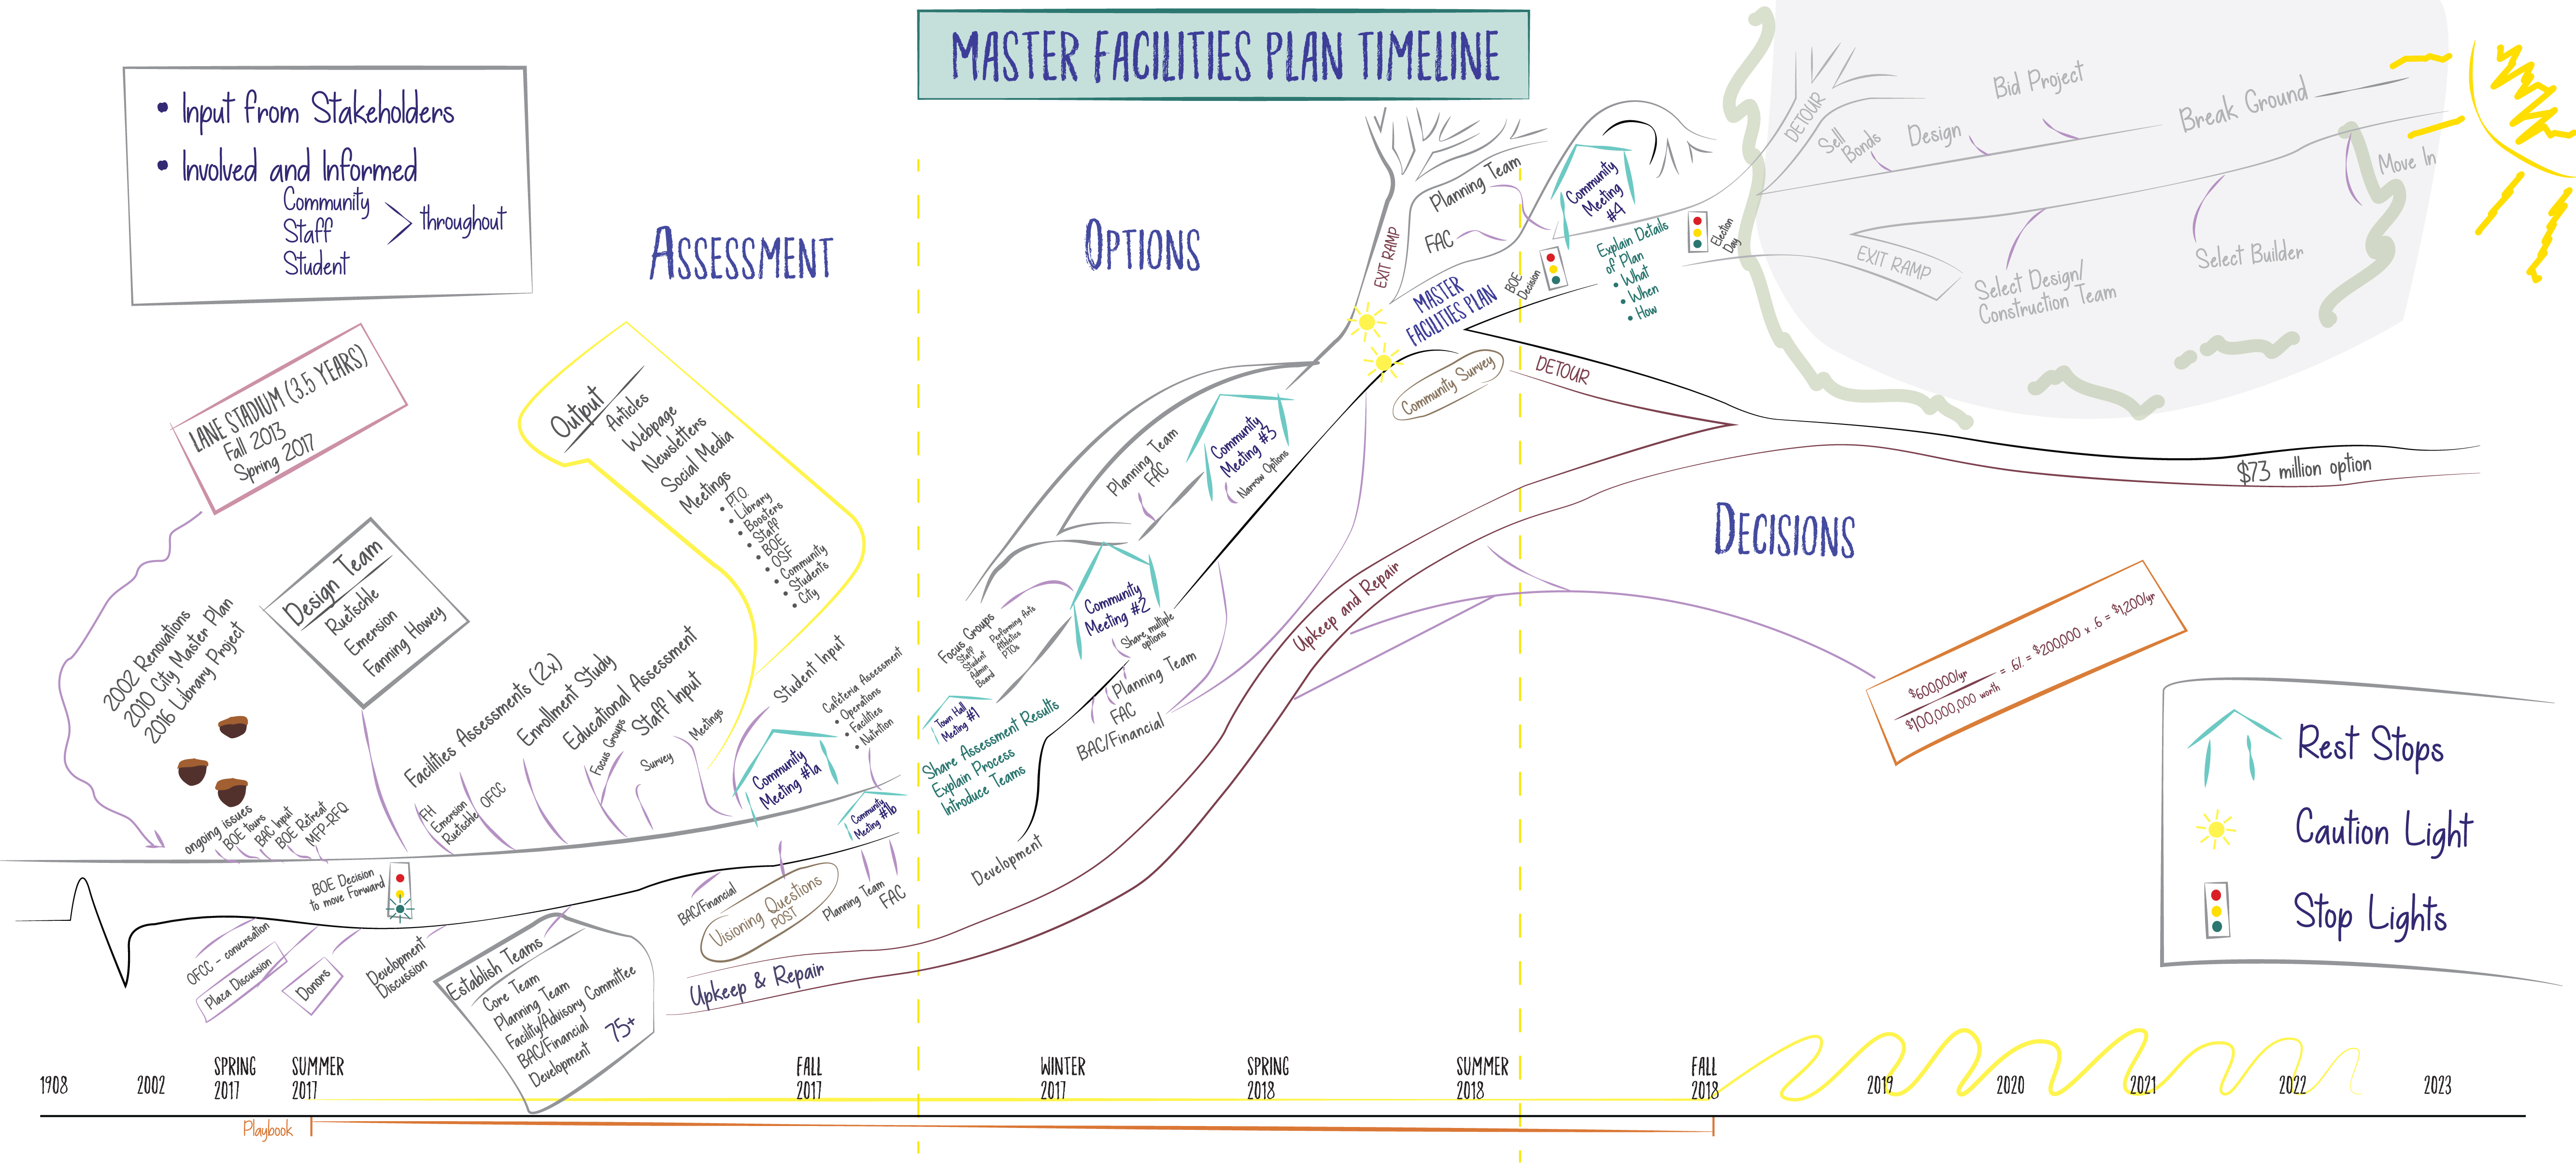 A graphic representation of the Master Facilities Timeline